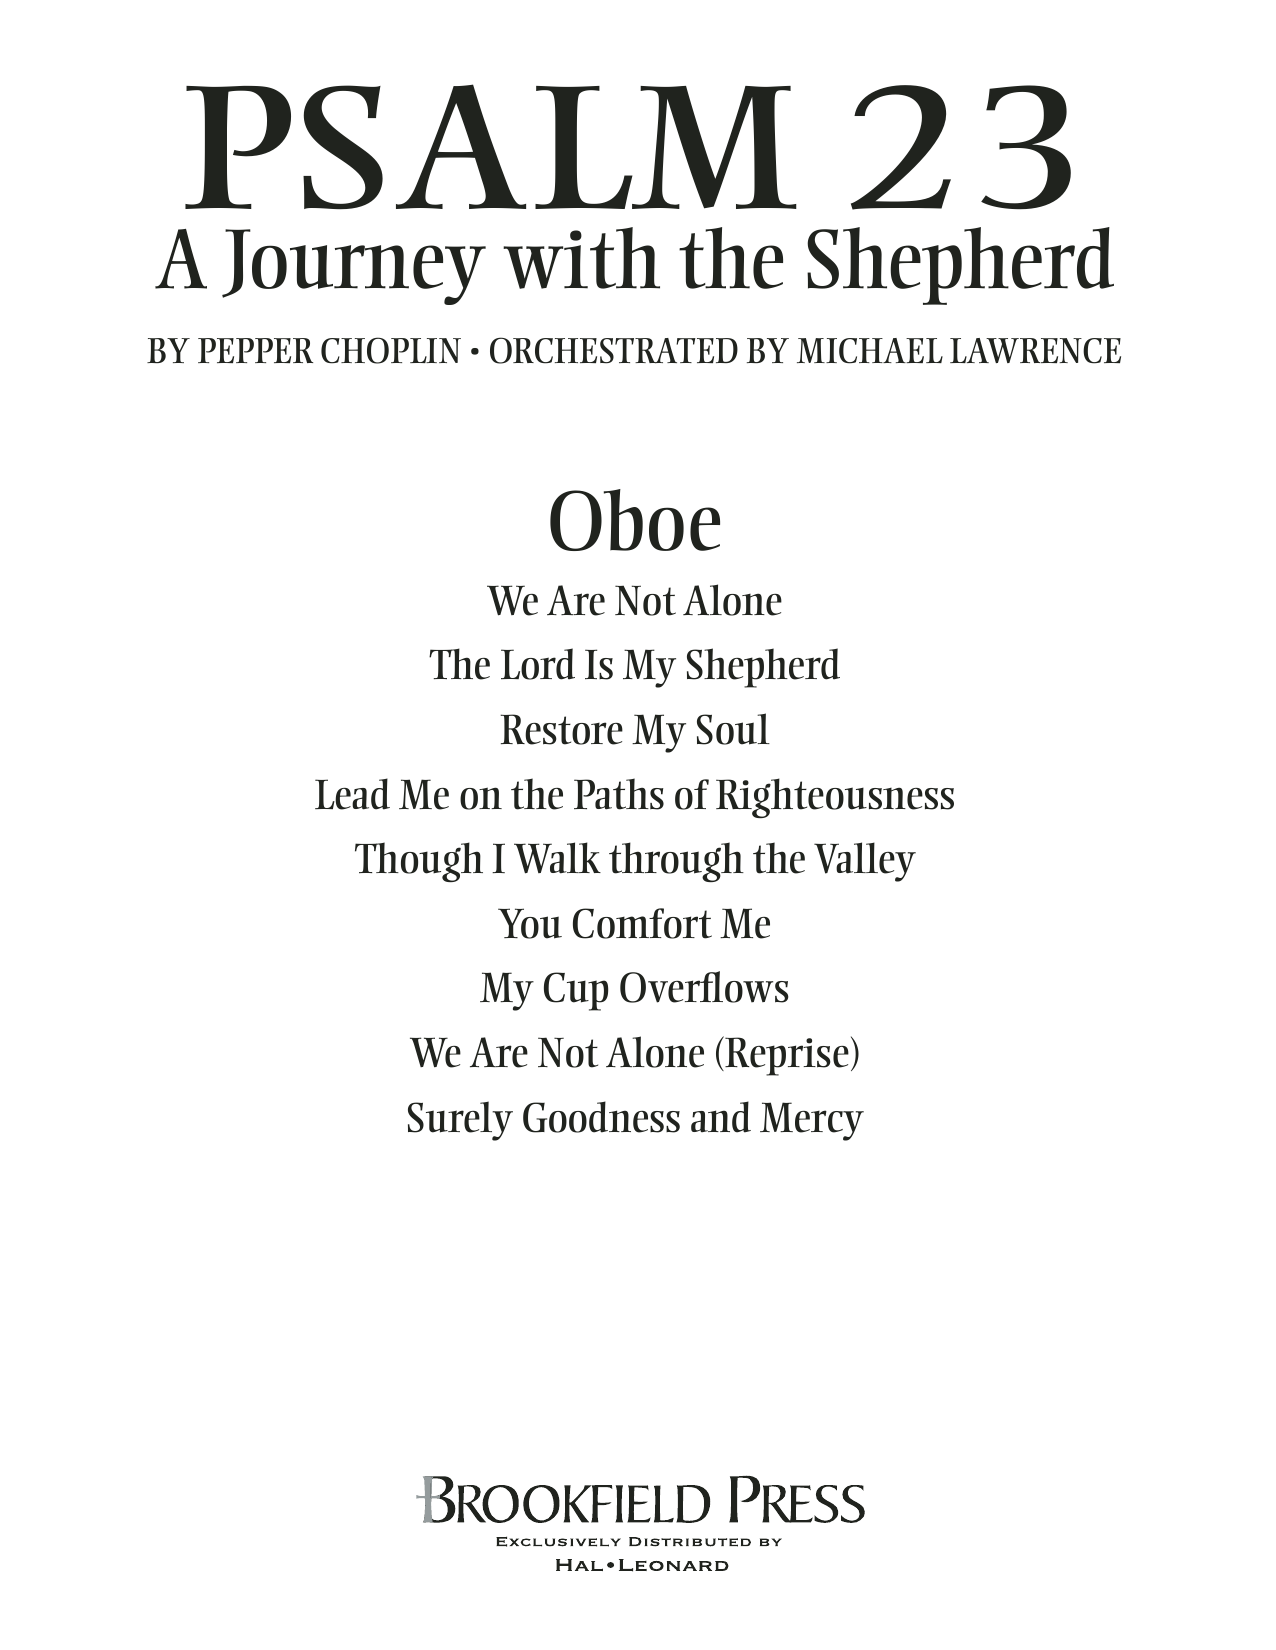 Psalm 23 - A Journey With The Shepherd - Oboe Sheet Music